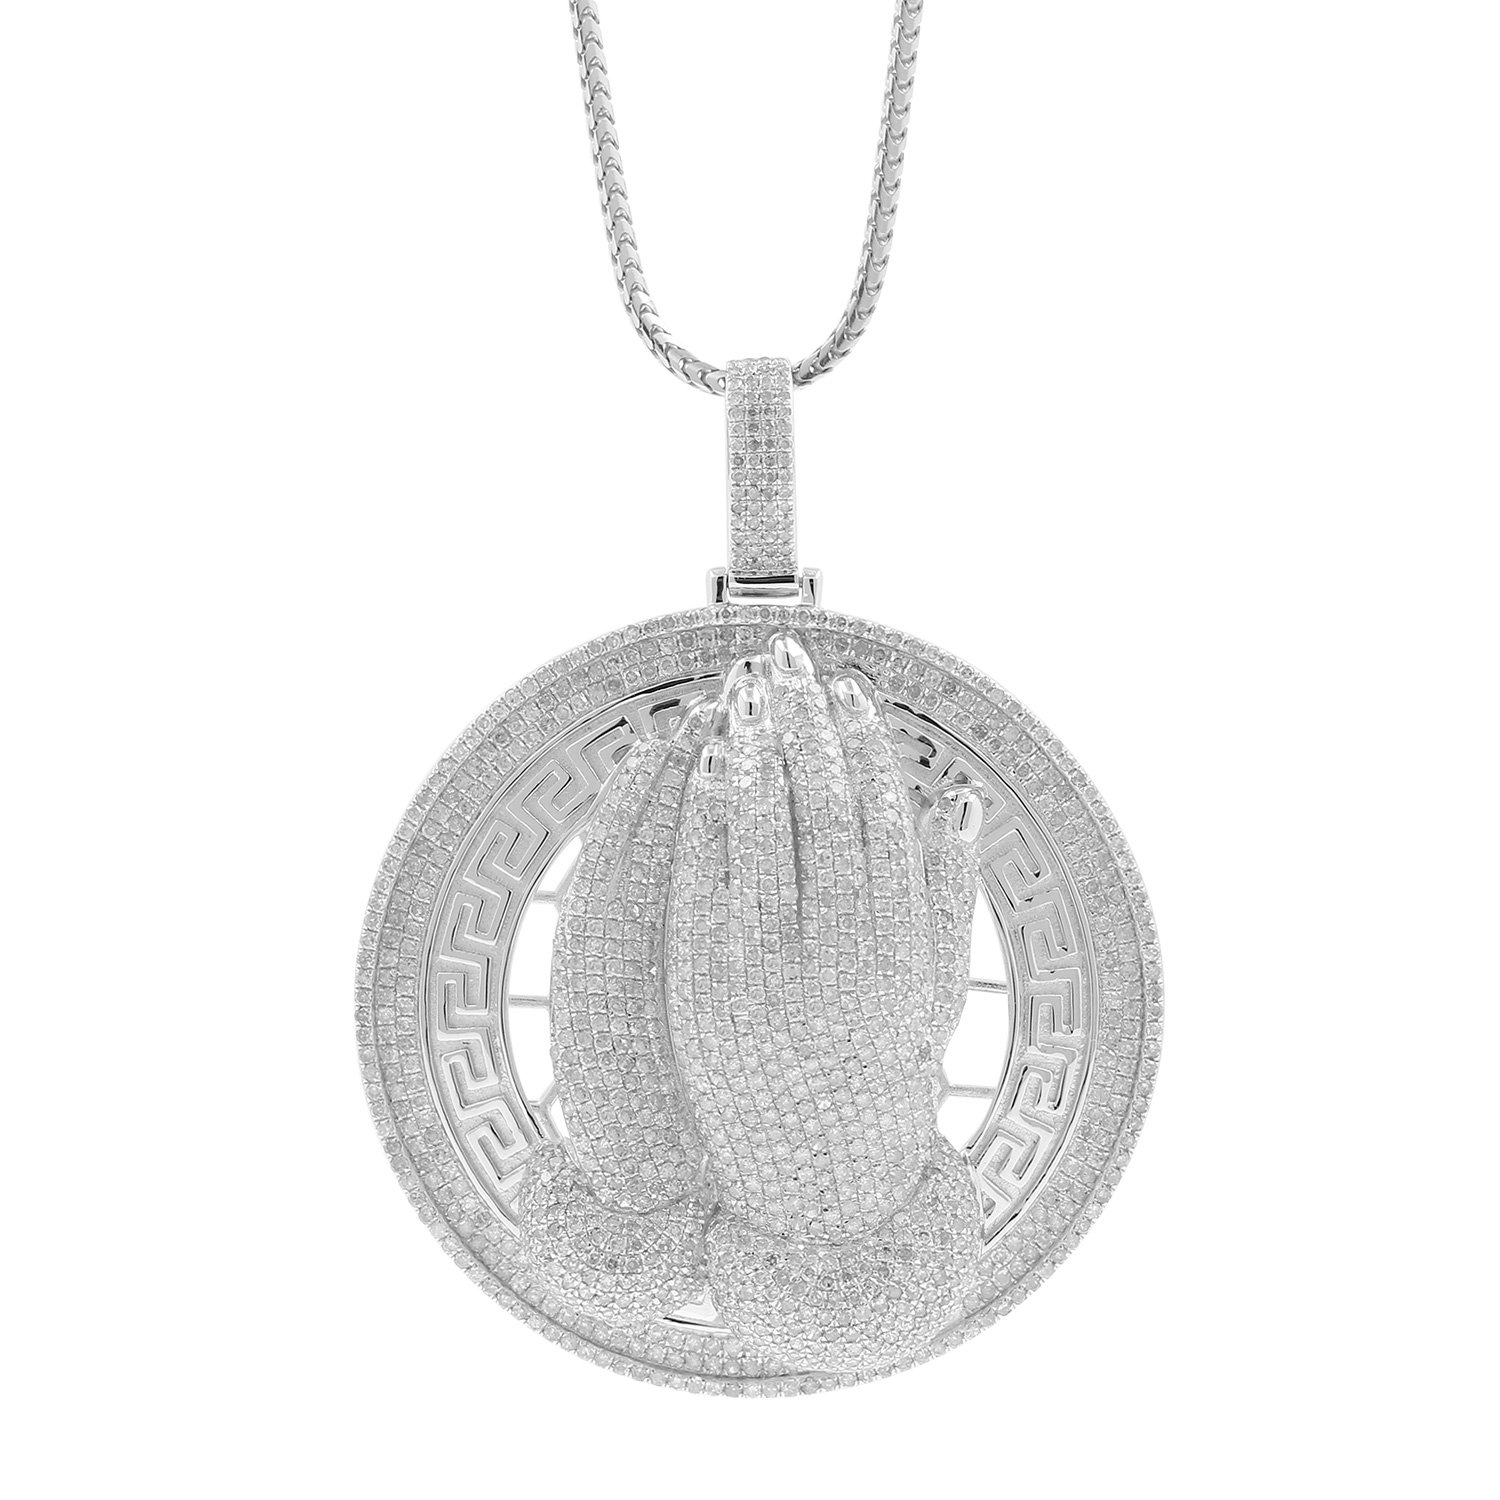 6.04ct Diamond Praying Hands Medallion Mens Hip Hop Pendant Necklace in 925 Silver